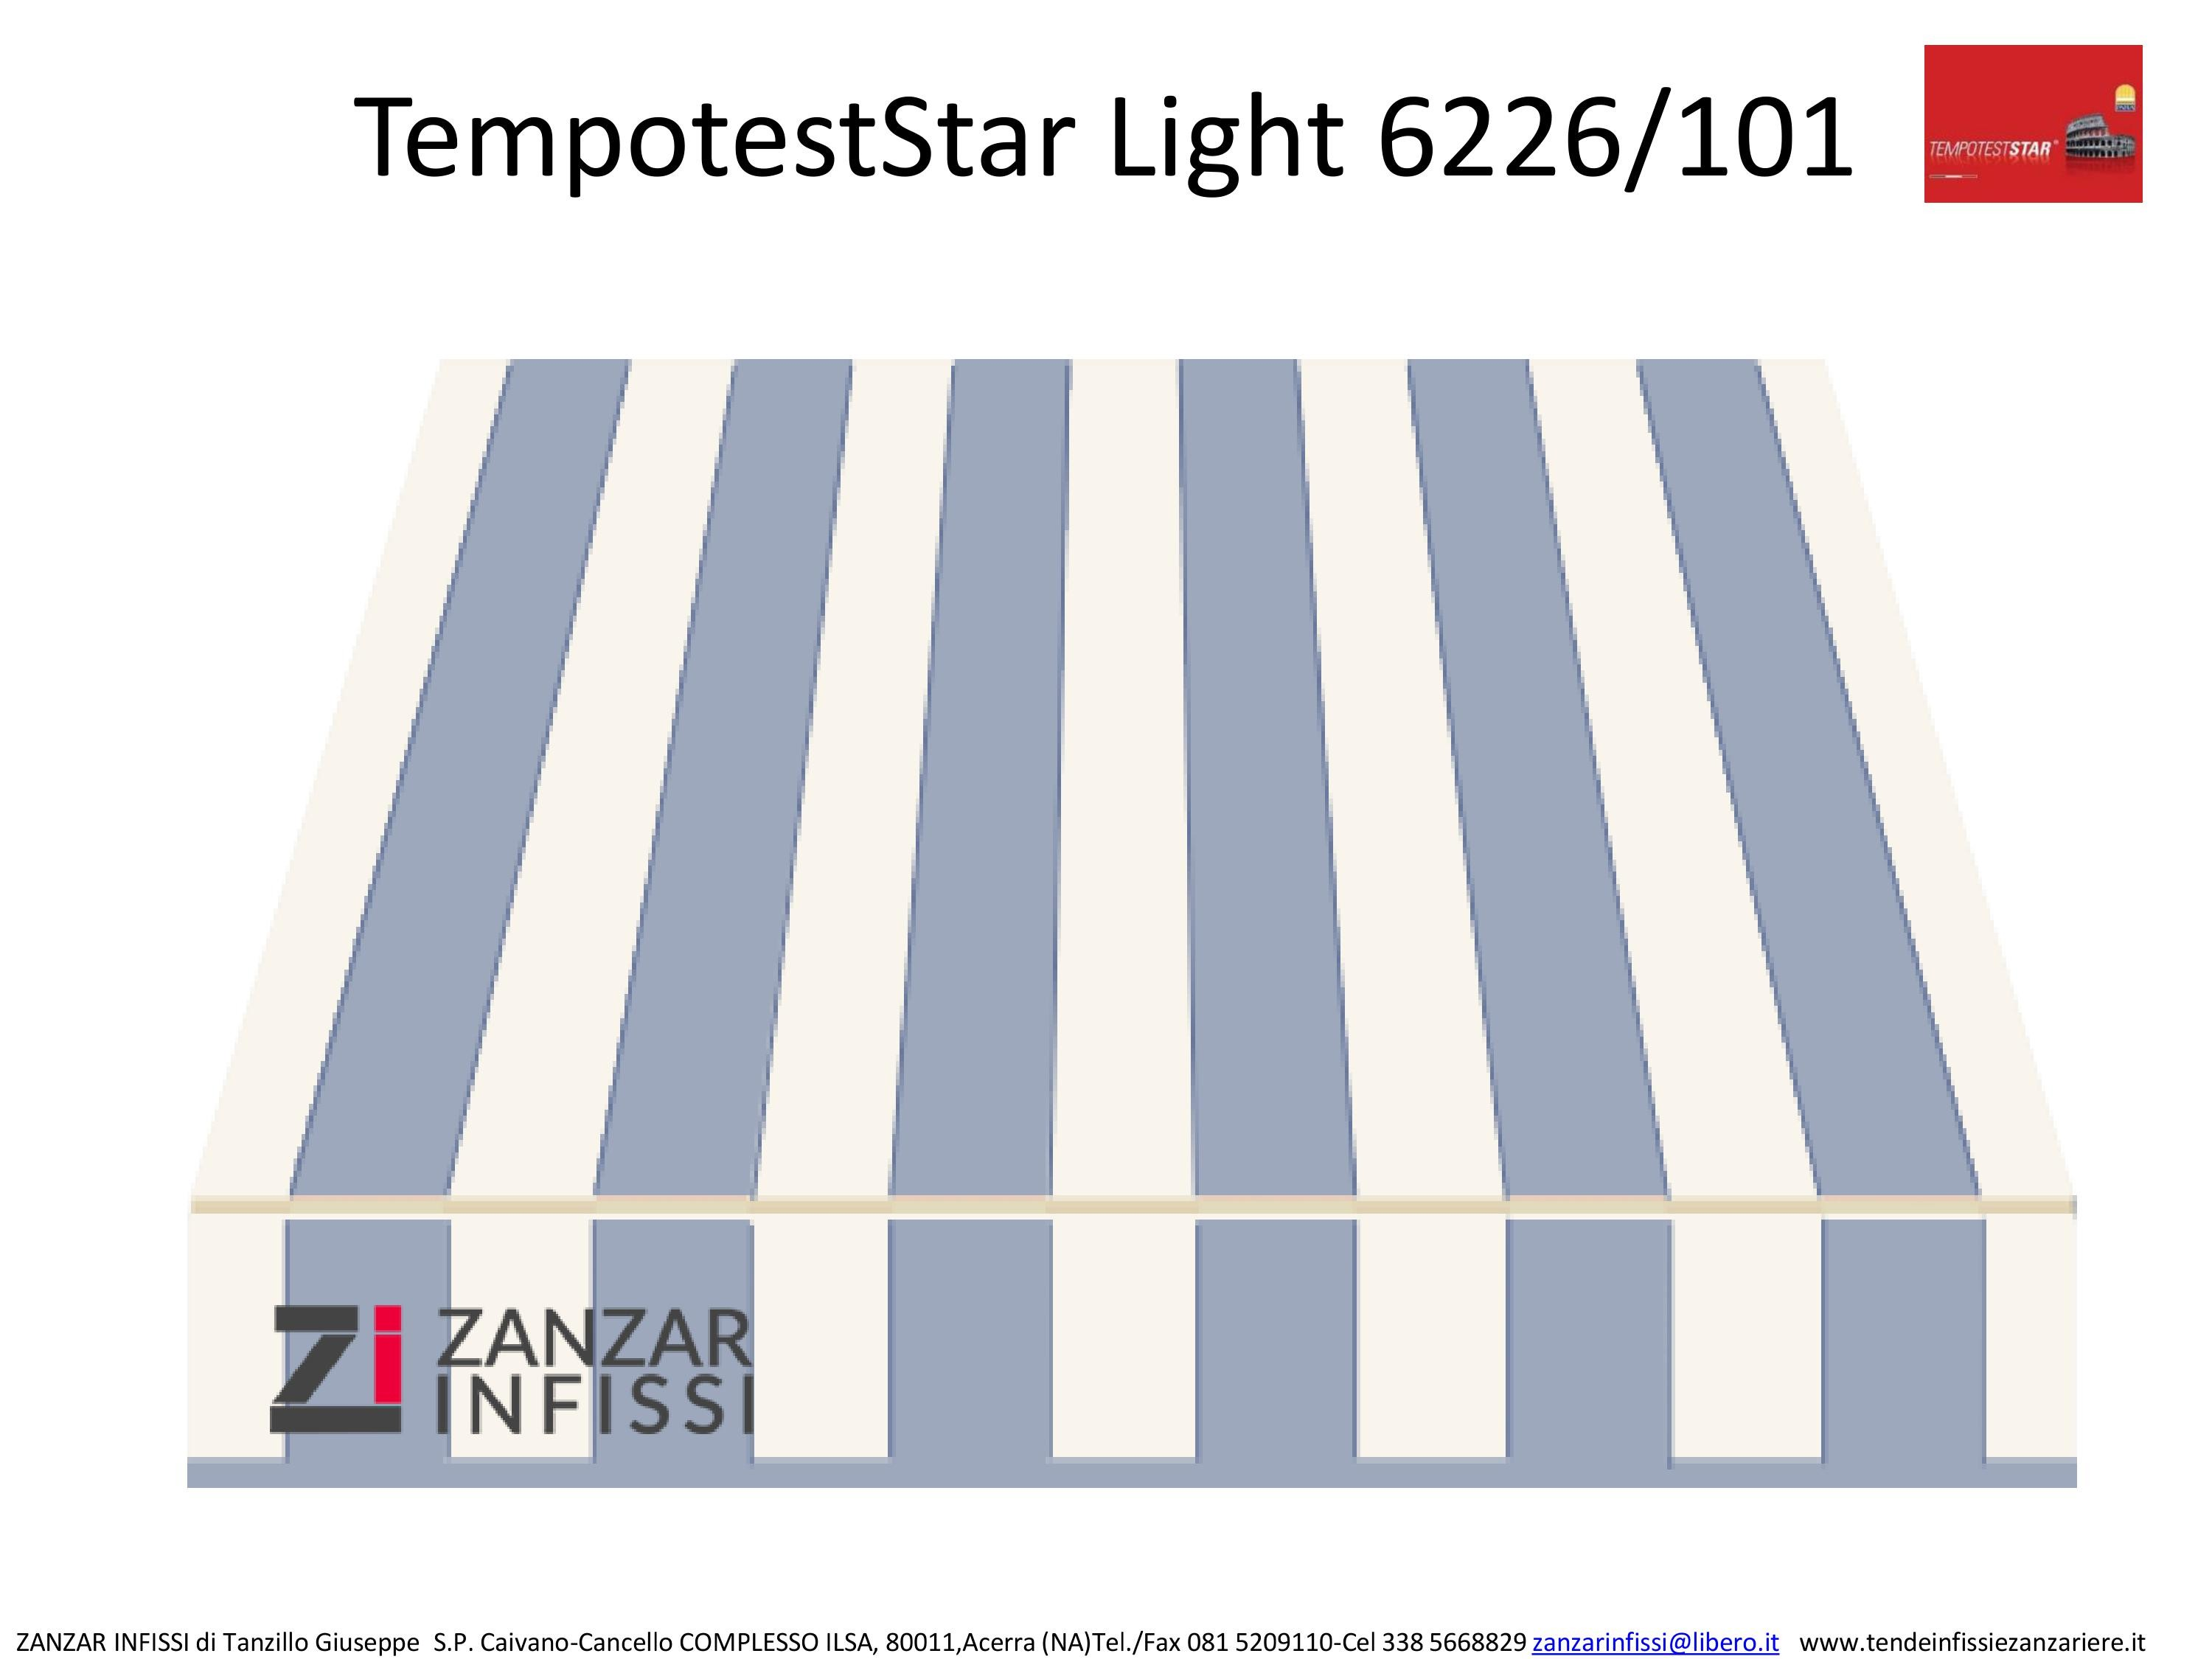 Tempotest star light 6226/101